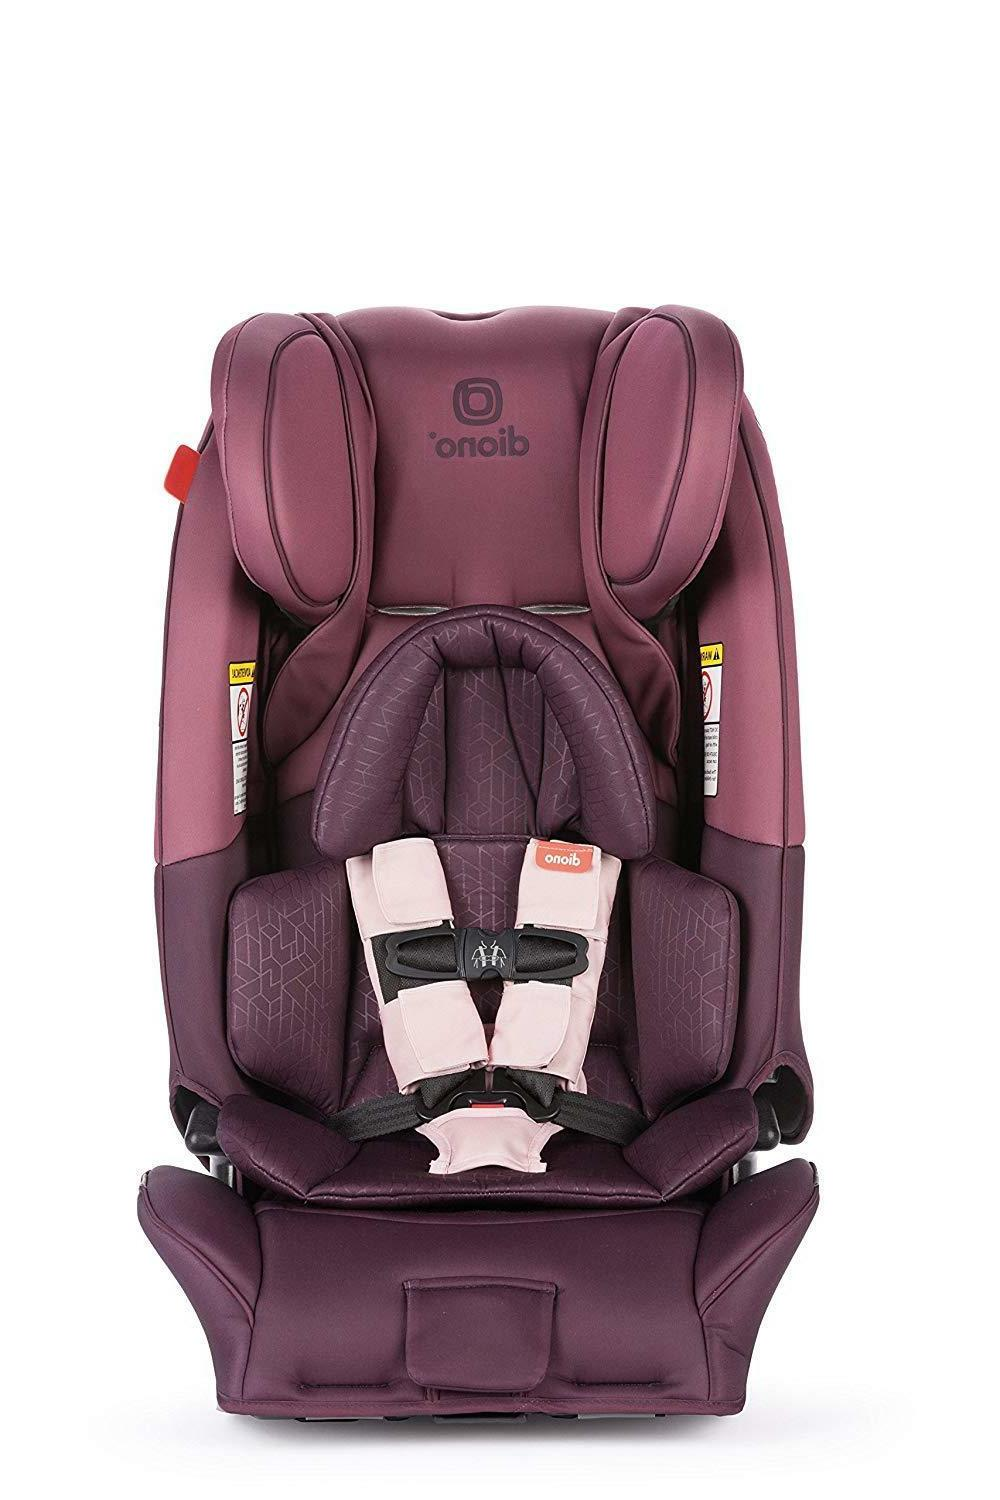 Diono 2019 Radian RXT Convertible in Plum, Free Shipping!